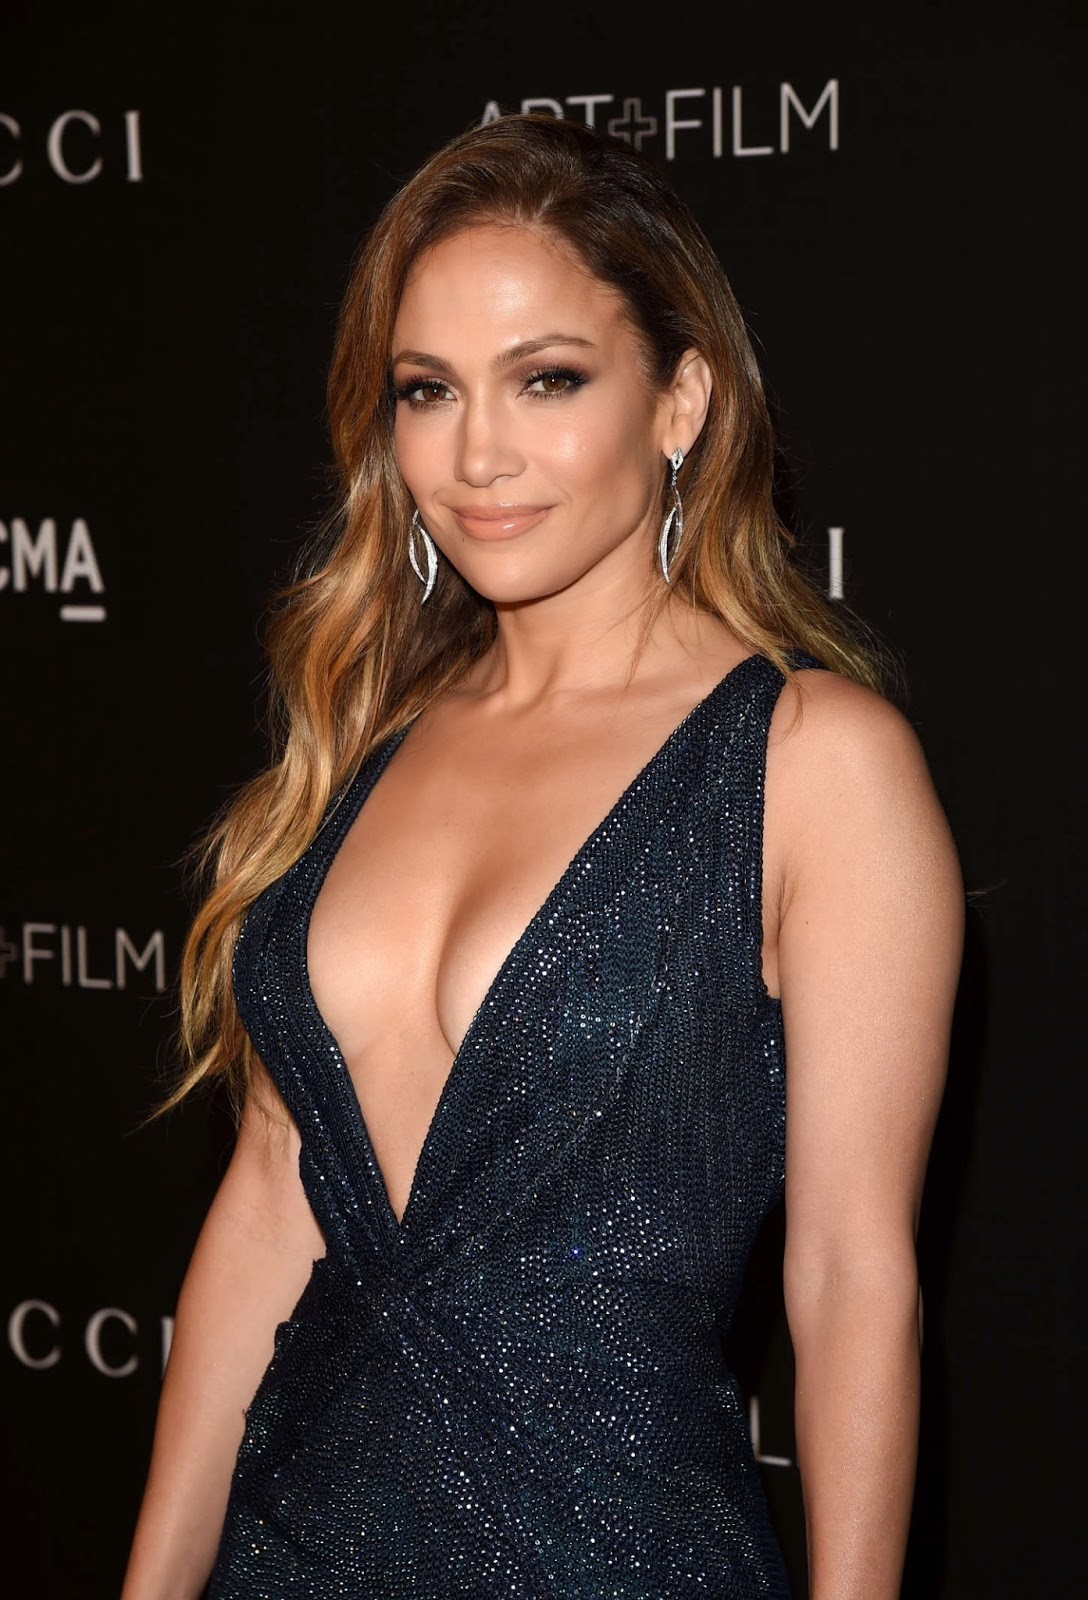 Jennifer Lopez in a plunging sequinned Gucci gown at the 2014 LACMA Art + Film Gala